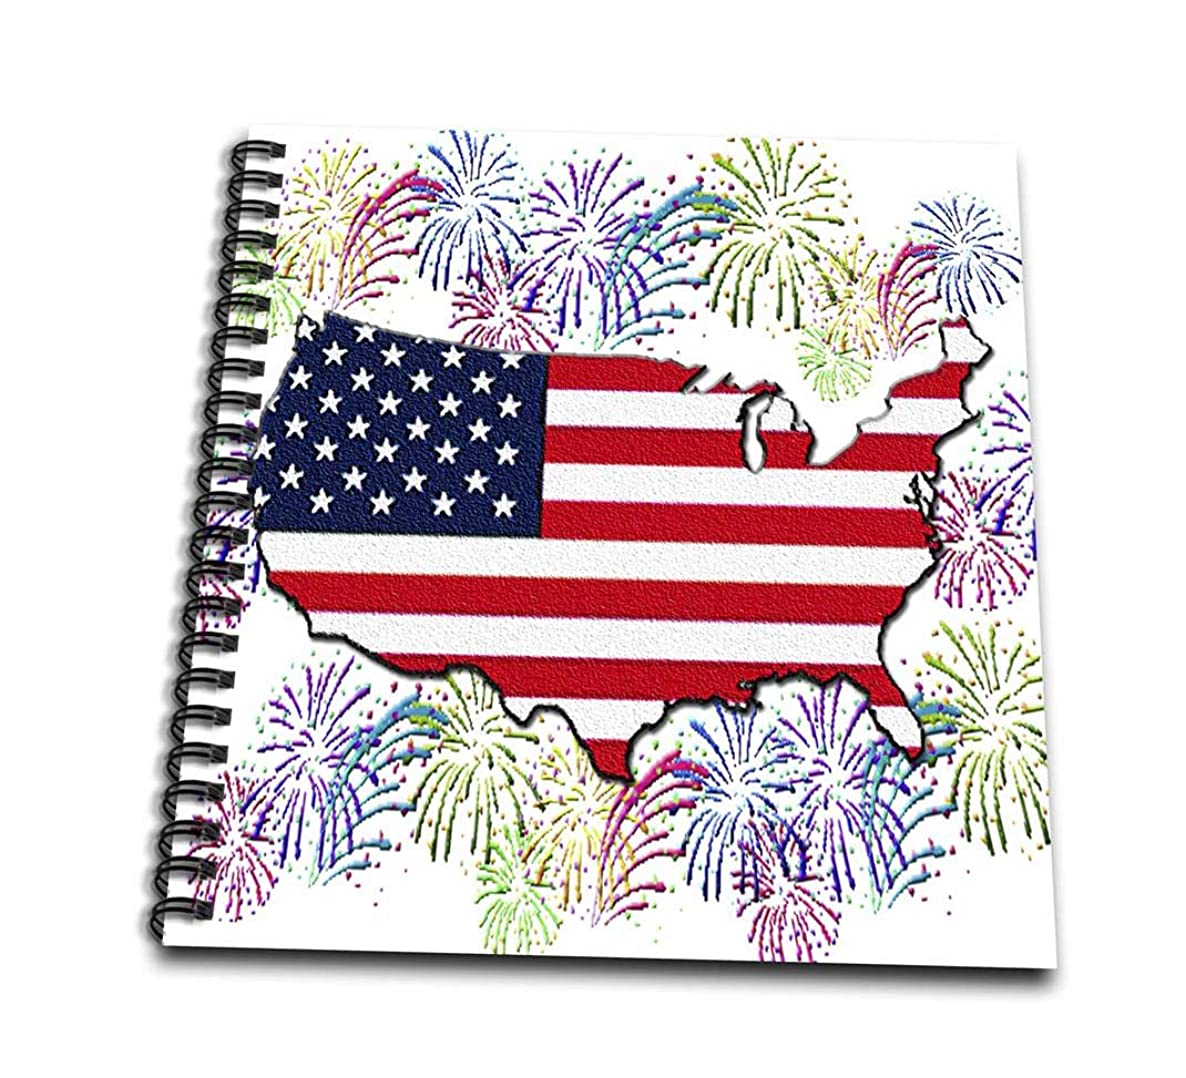 3dRose db_50743_2 USA Flag Map with Fireworks Textured-Memory Book, 12 by 12-Inch